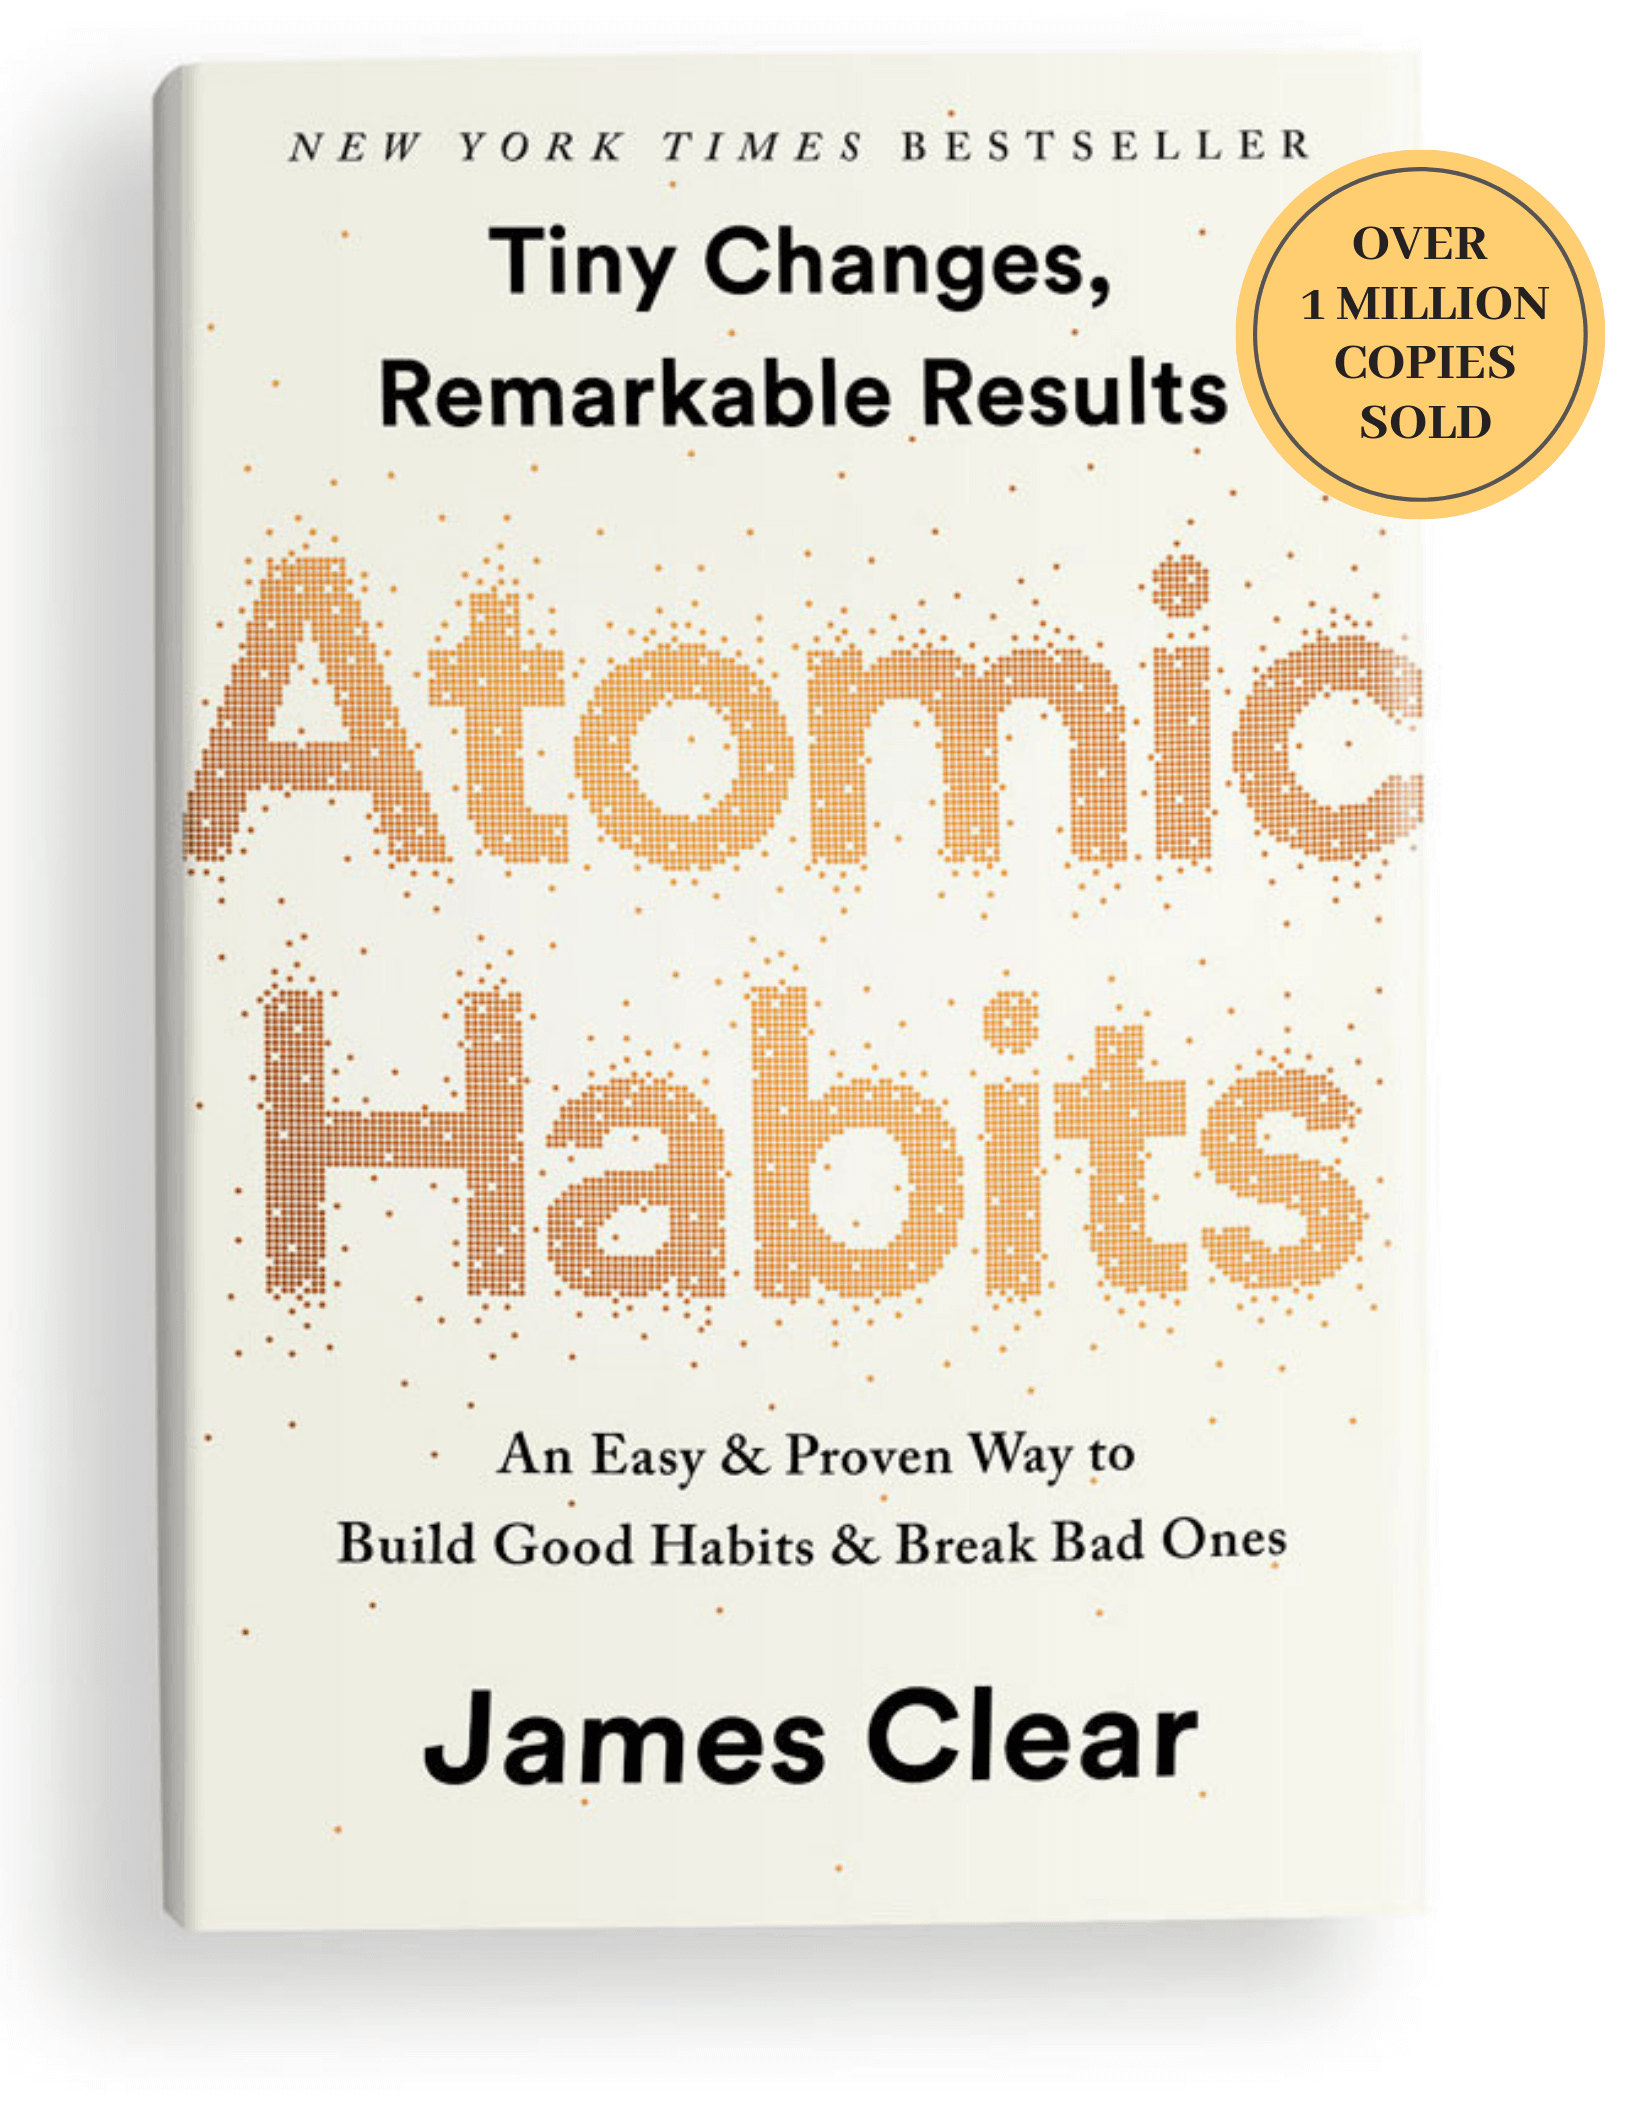 Atomic Habits Tiny Changes Remarkable Results by James Clear